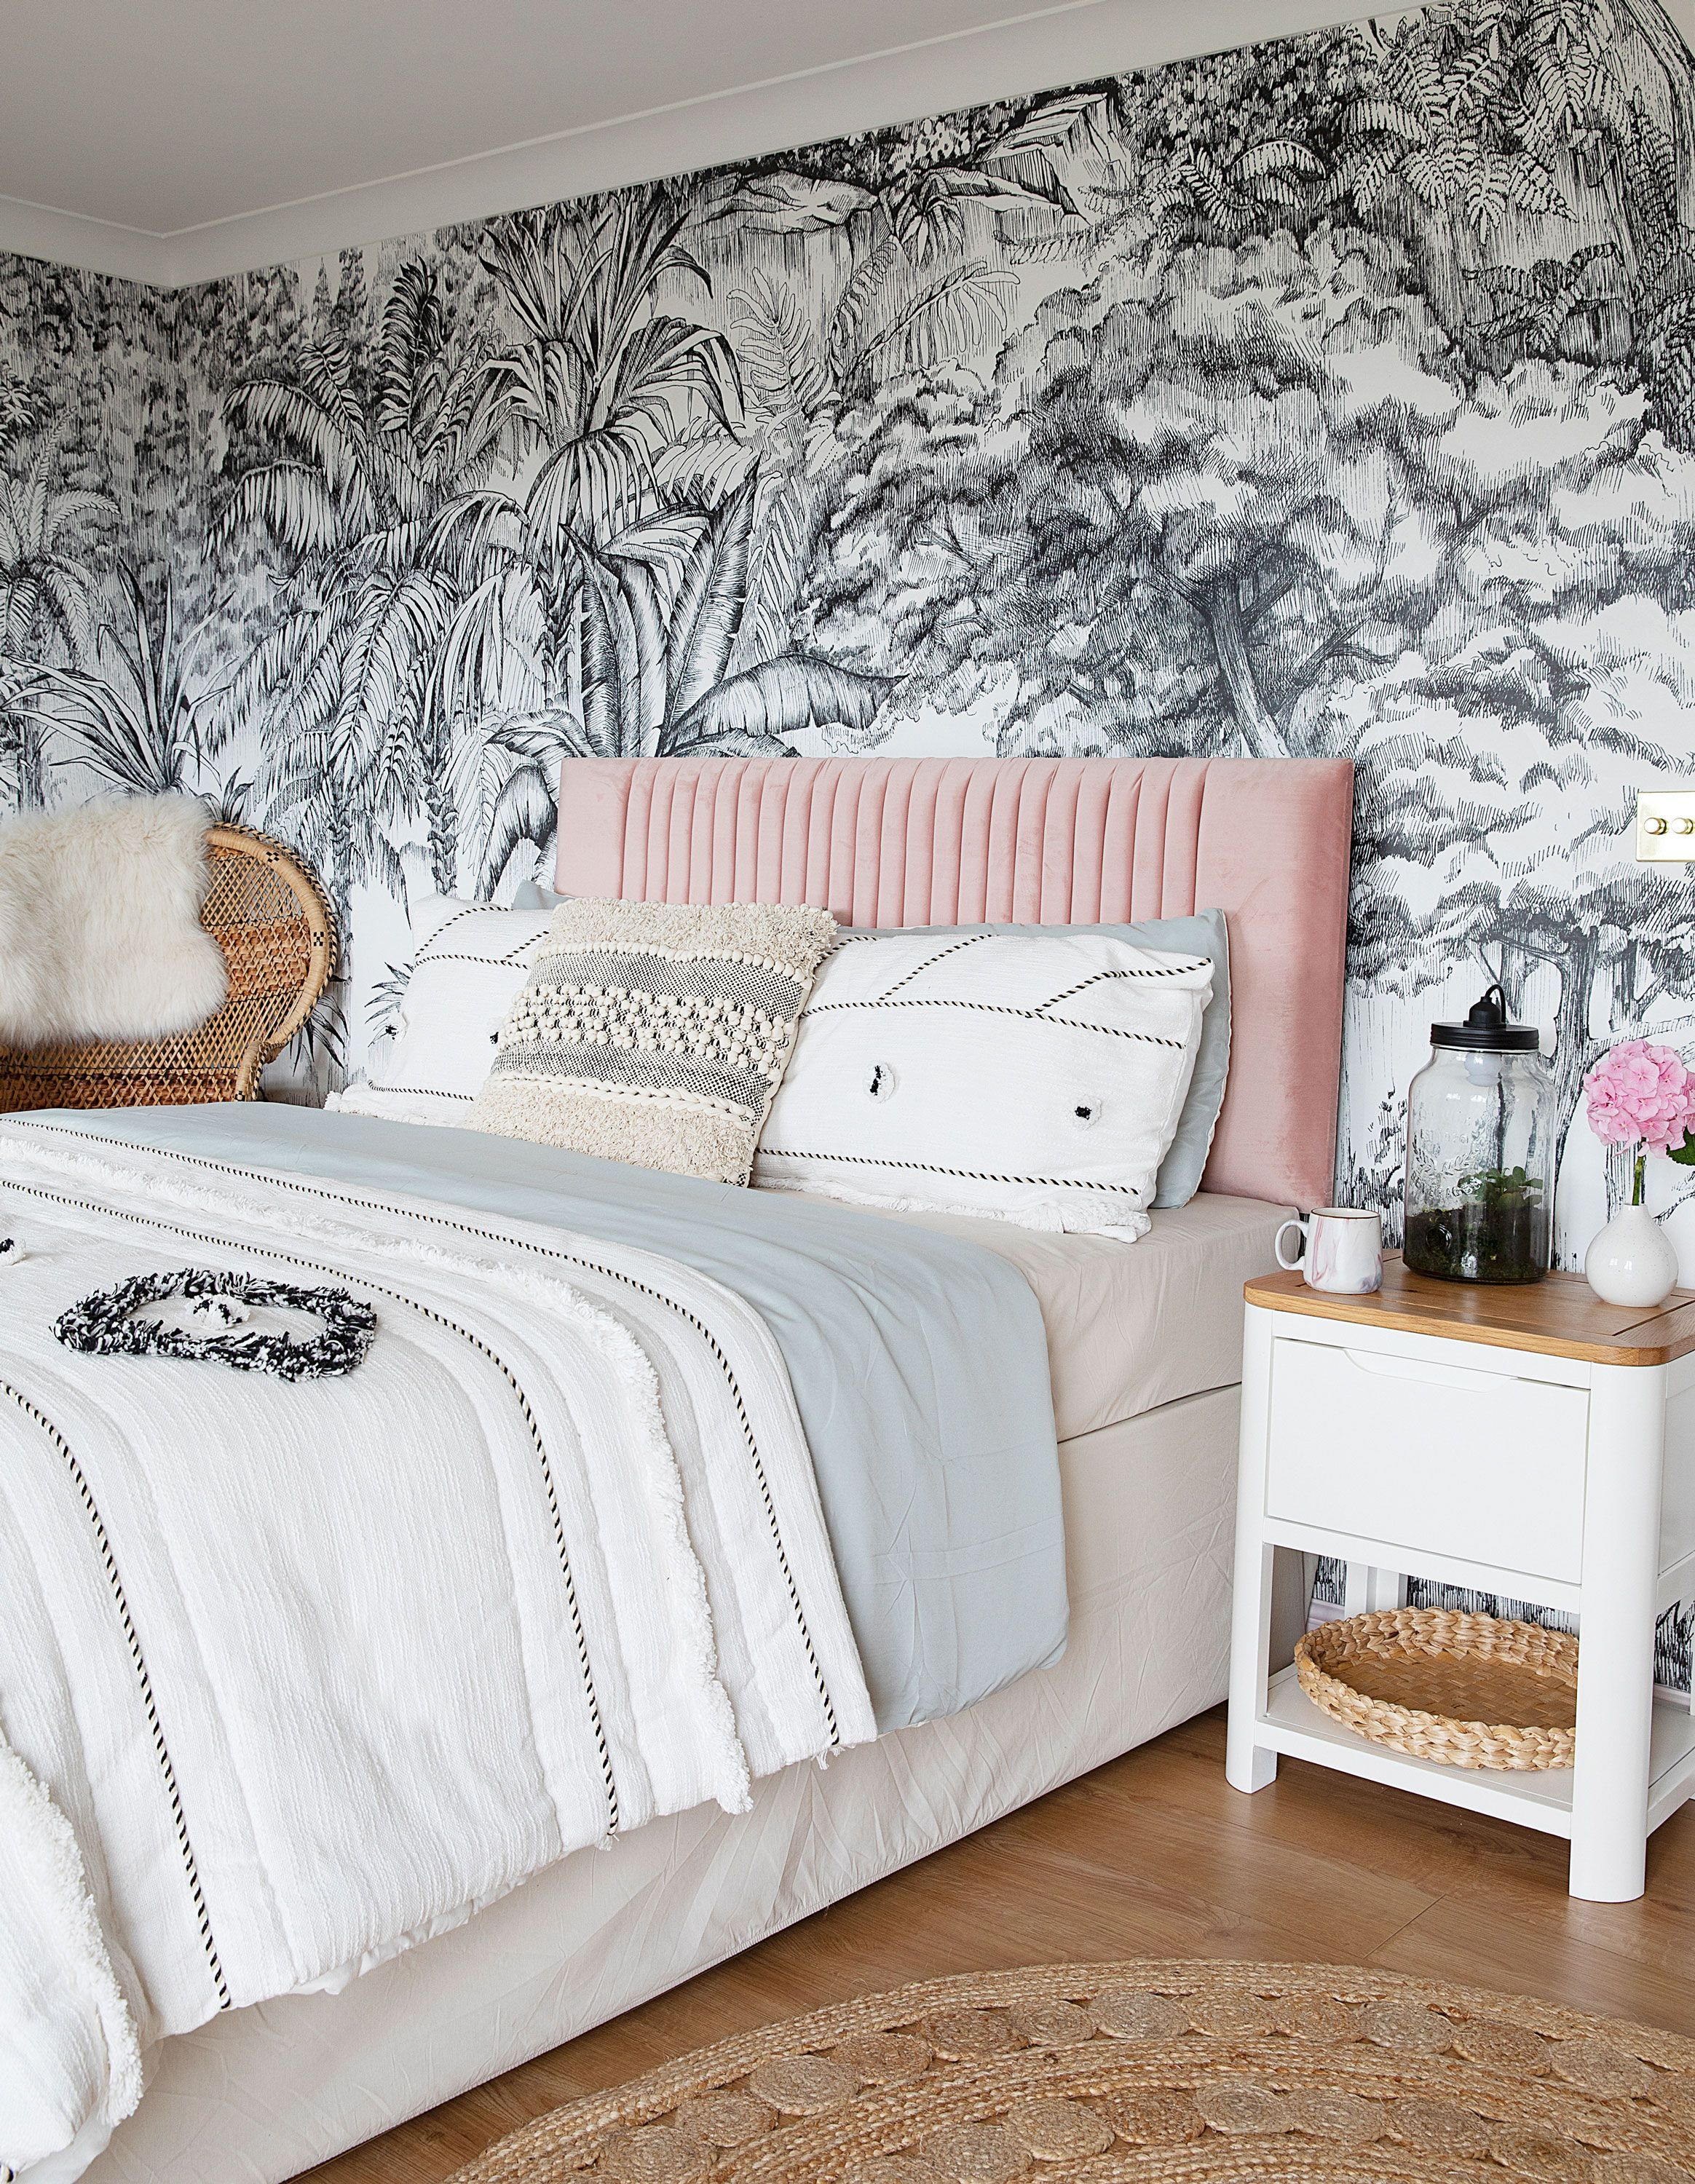 Townhouse Makeover Transforms Old Family Home Wallpaper Design For Bedroom Wallpaper Bedroom Beautiful Bedroom Inspiration Bedroom wallpaper cape town